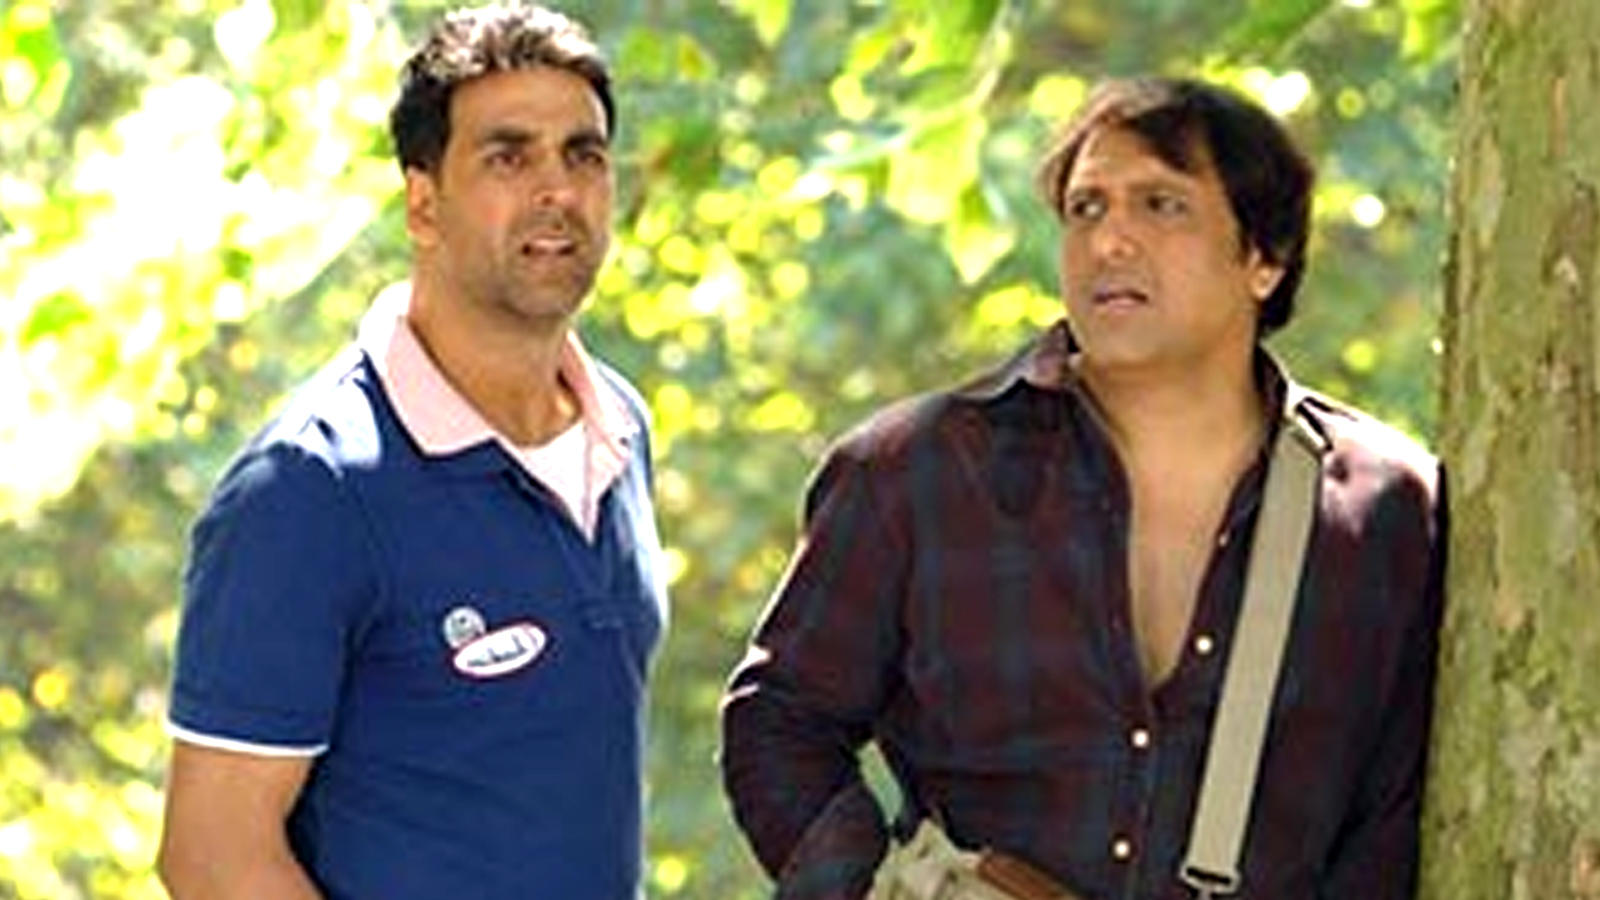 After Akshay Kumar, now Govinda tests positive for COVID-19, quarantines at home | Hindi Movie News – Bollywood – Times of India